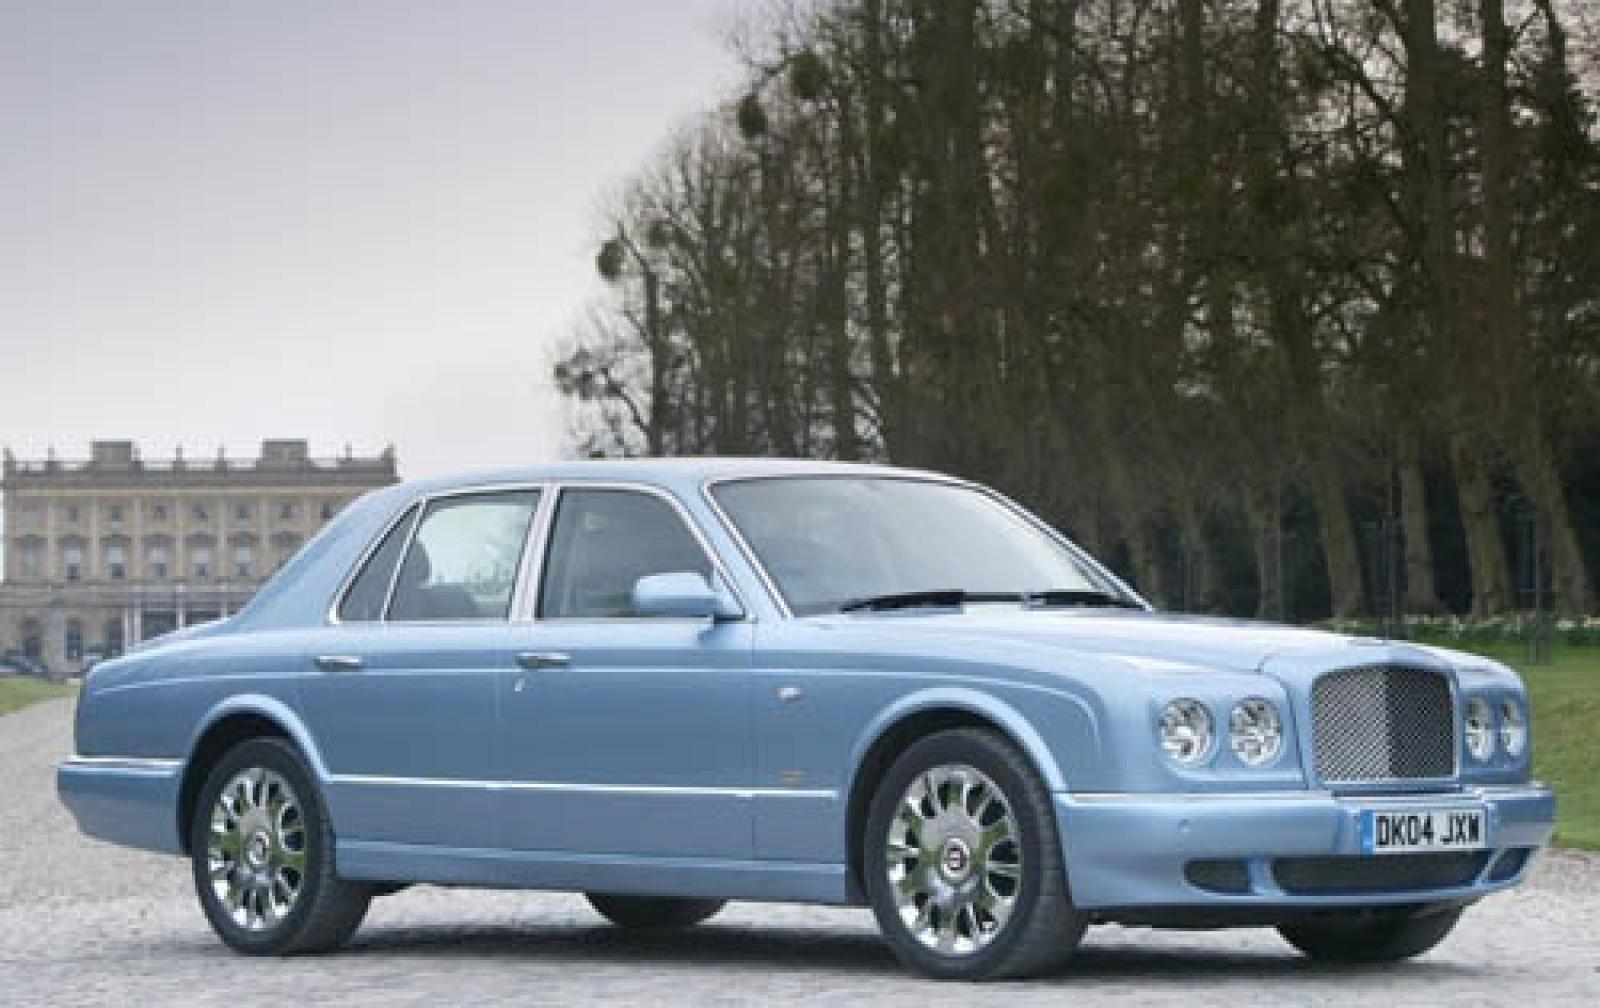 2005 bentley arnage information and photos zombiedrive 800 1024 1280 1600 origin 2005 bentley arnage vanachro Images